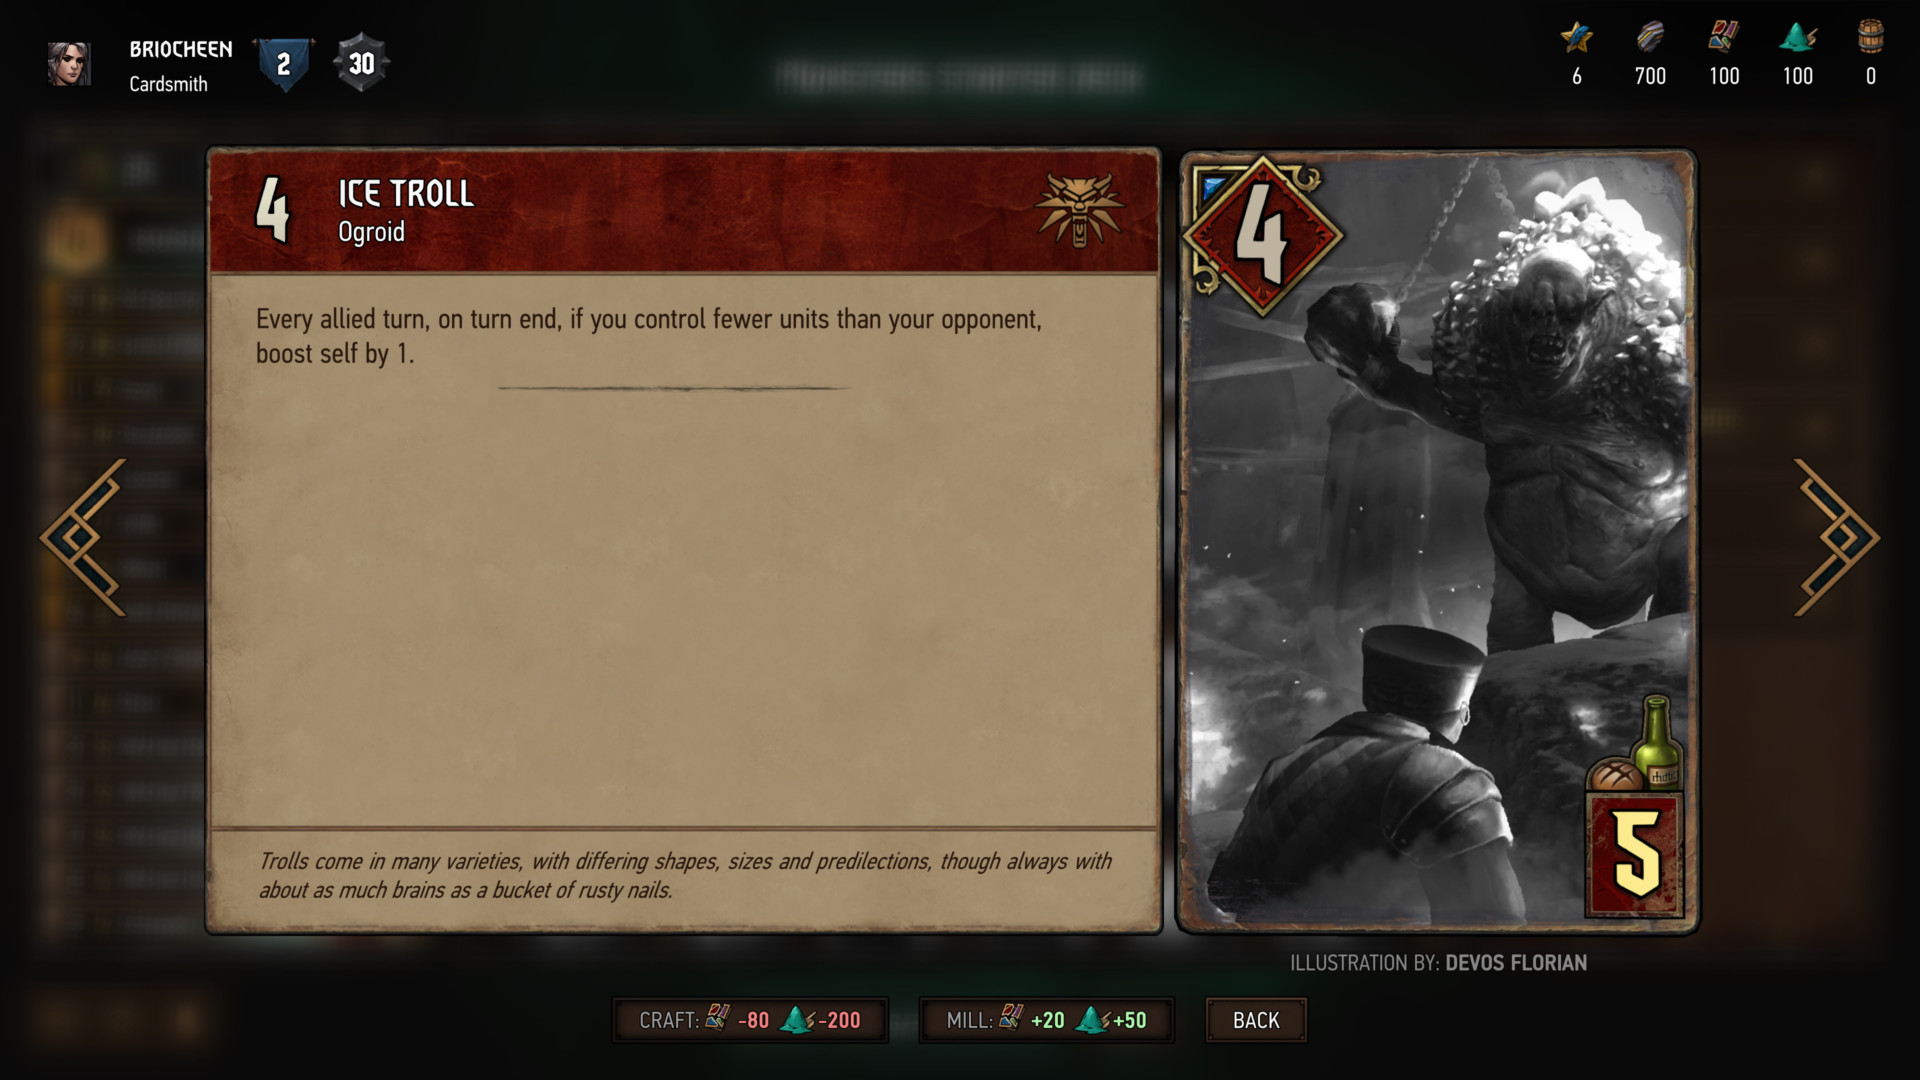 Ice troll card screenshot of Gwent: The Witcher Card Game video game interface.